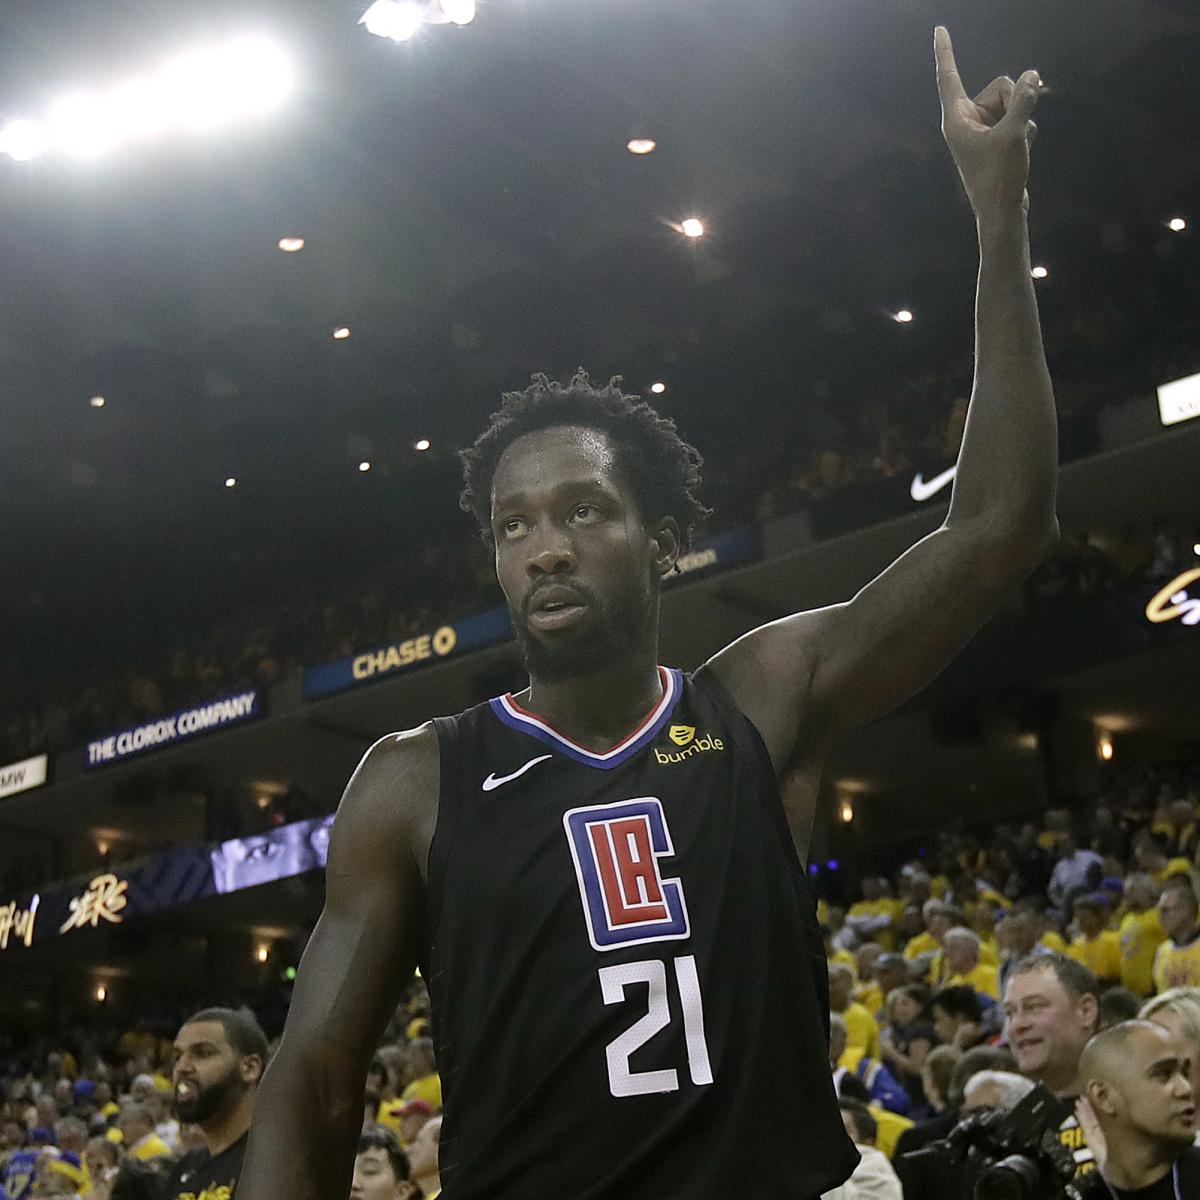 Warriors Come Out To Play Bleacher Report: Pat Beverley Celebrated Warriors Upset By Working Out In